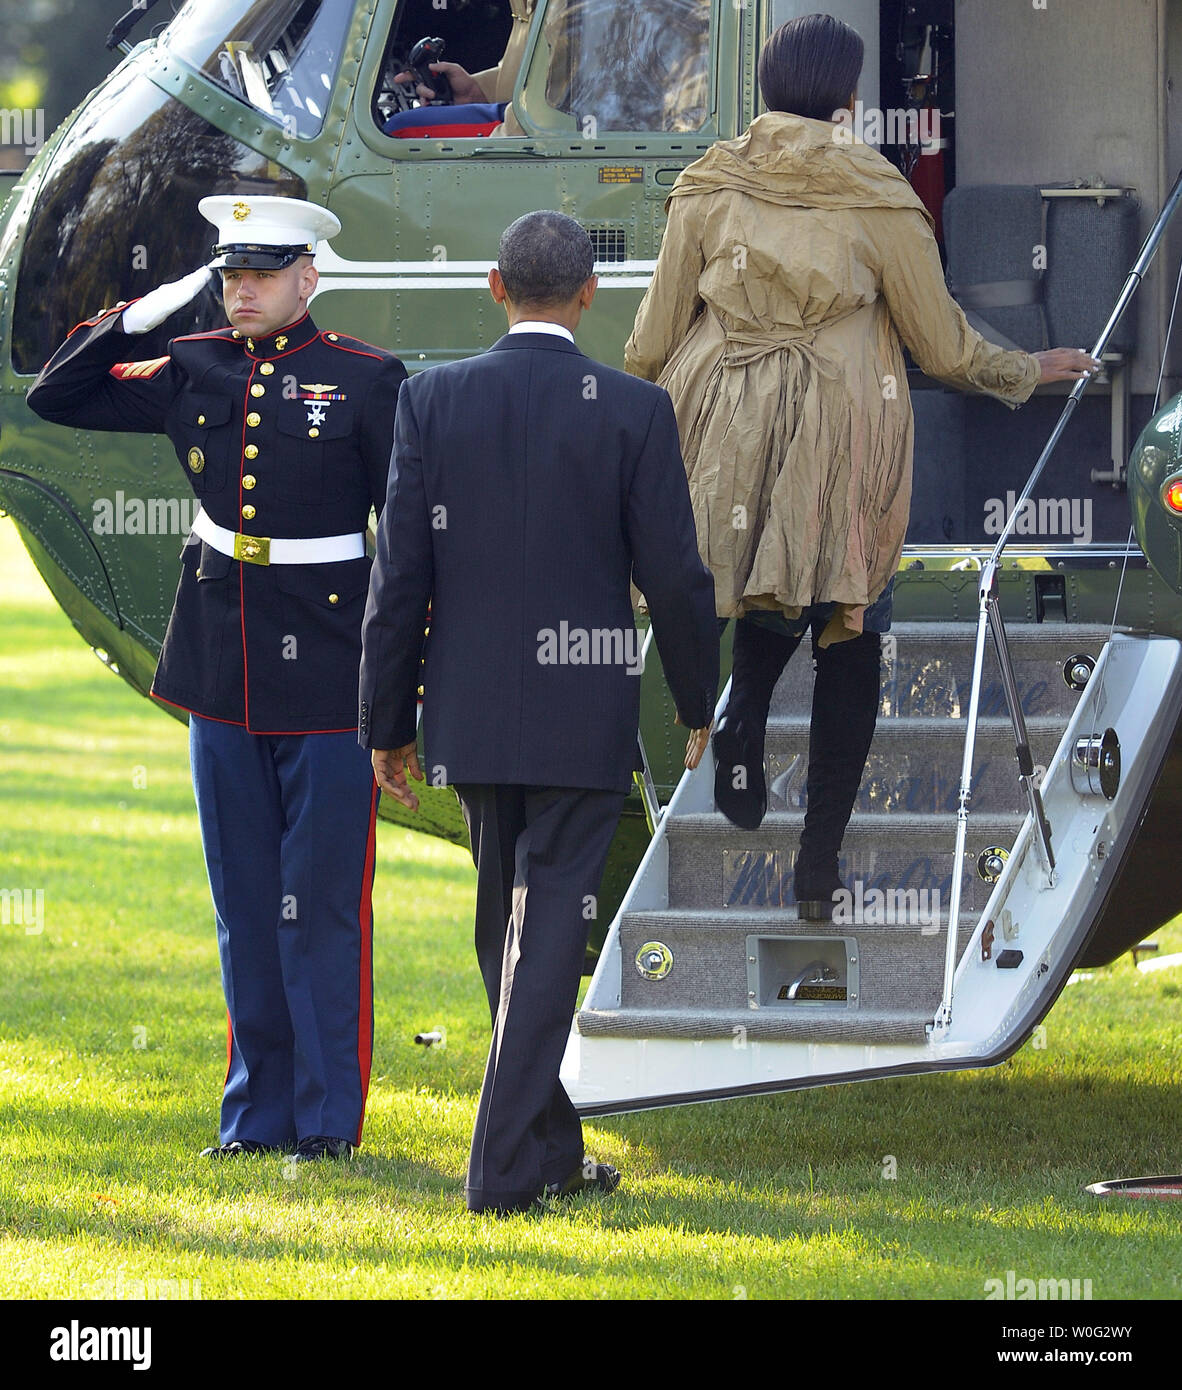 U.S. President Barack Obama and First Lady Michelle Obama embark Marine One on the South Lawn of the White House as they begin a ten day trip to Asia in Washington on November 5, 2010.   UPI/Roger L. Wollenberg - Stock Image